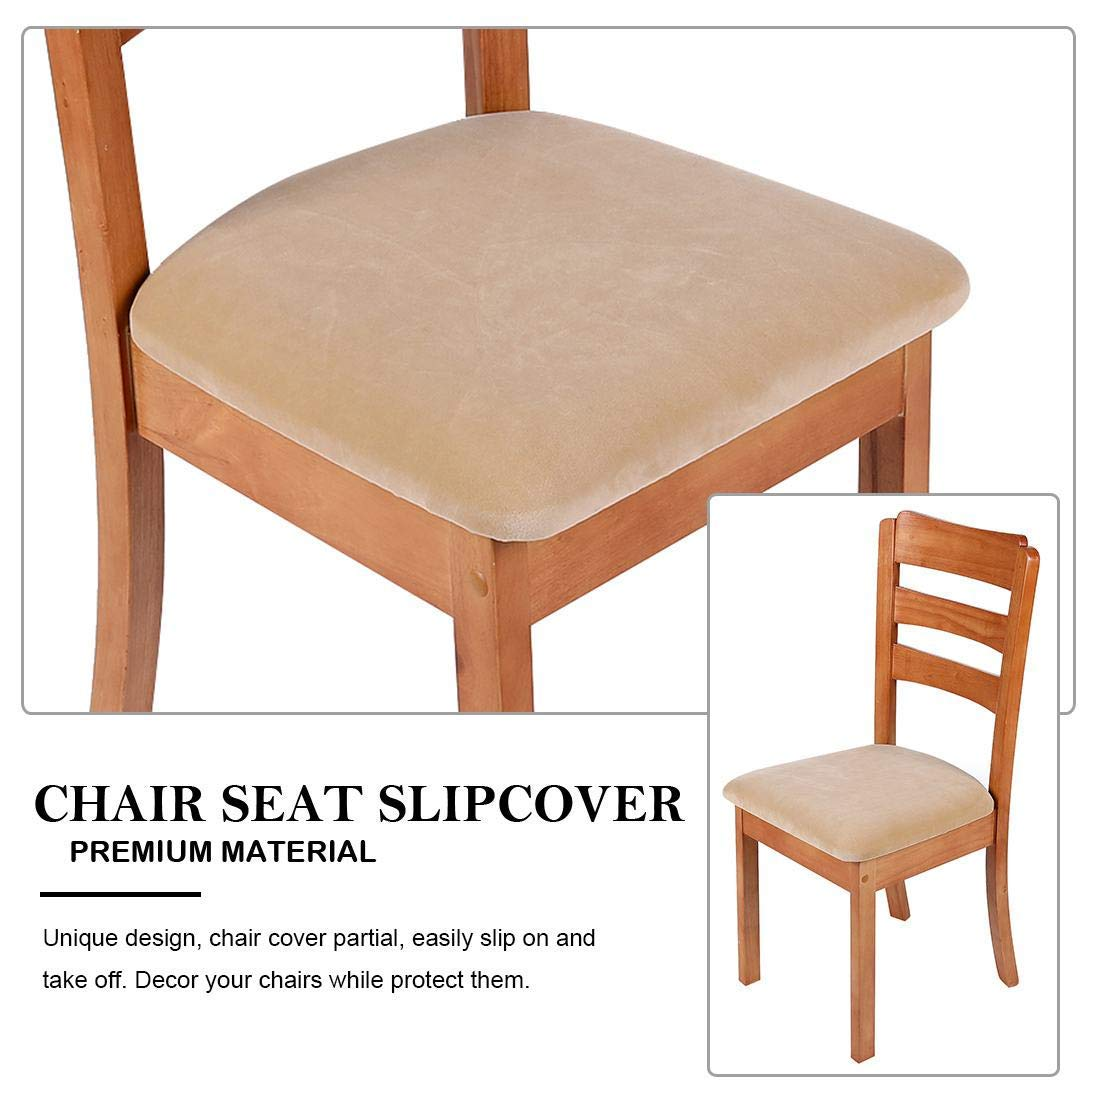 Homaxy Chair Cover Seat Velvet Soft Seat Cover Chair Stretch Seat Covers For Dining Room Chairs Washable Protective Cover Covers For Chairs 2 Set Black Velvet Home Garden Store Home Kitchen